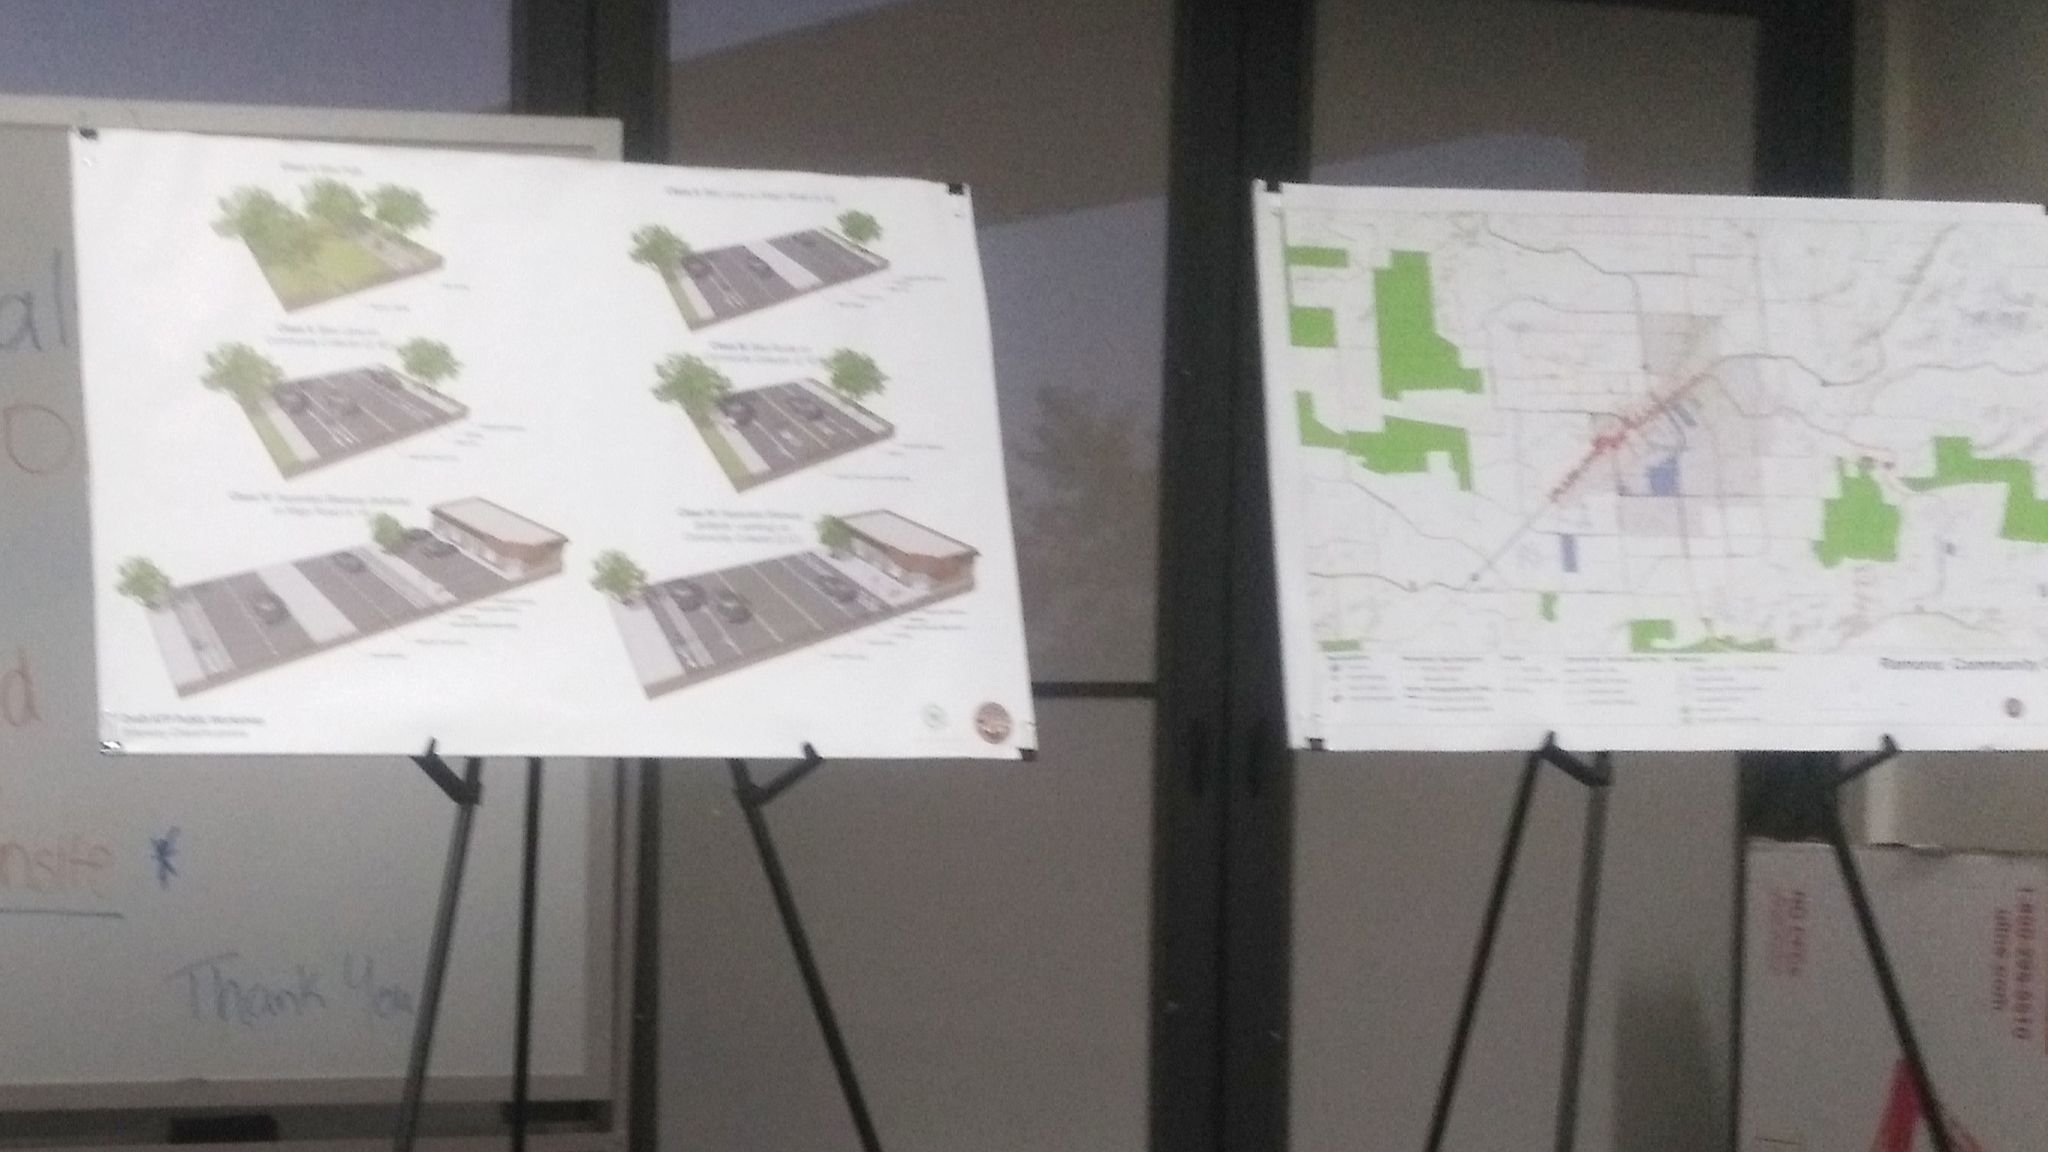 San Diego County staff present maps that show pedestrian and bicycle routes proposed in a Draft Active Transportation Plan.